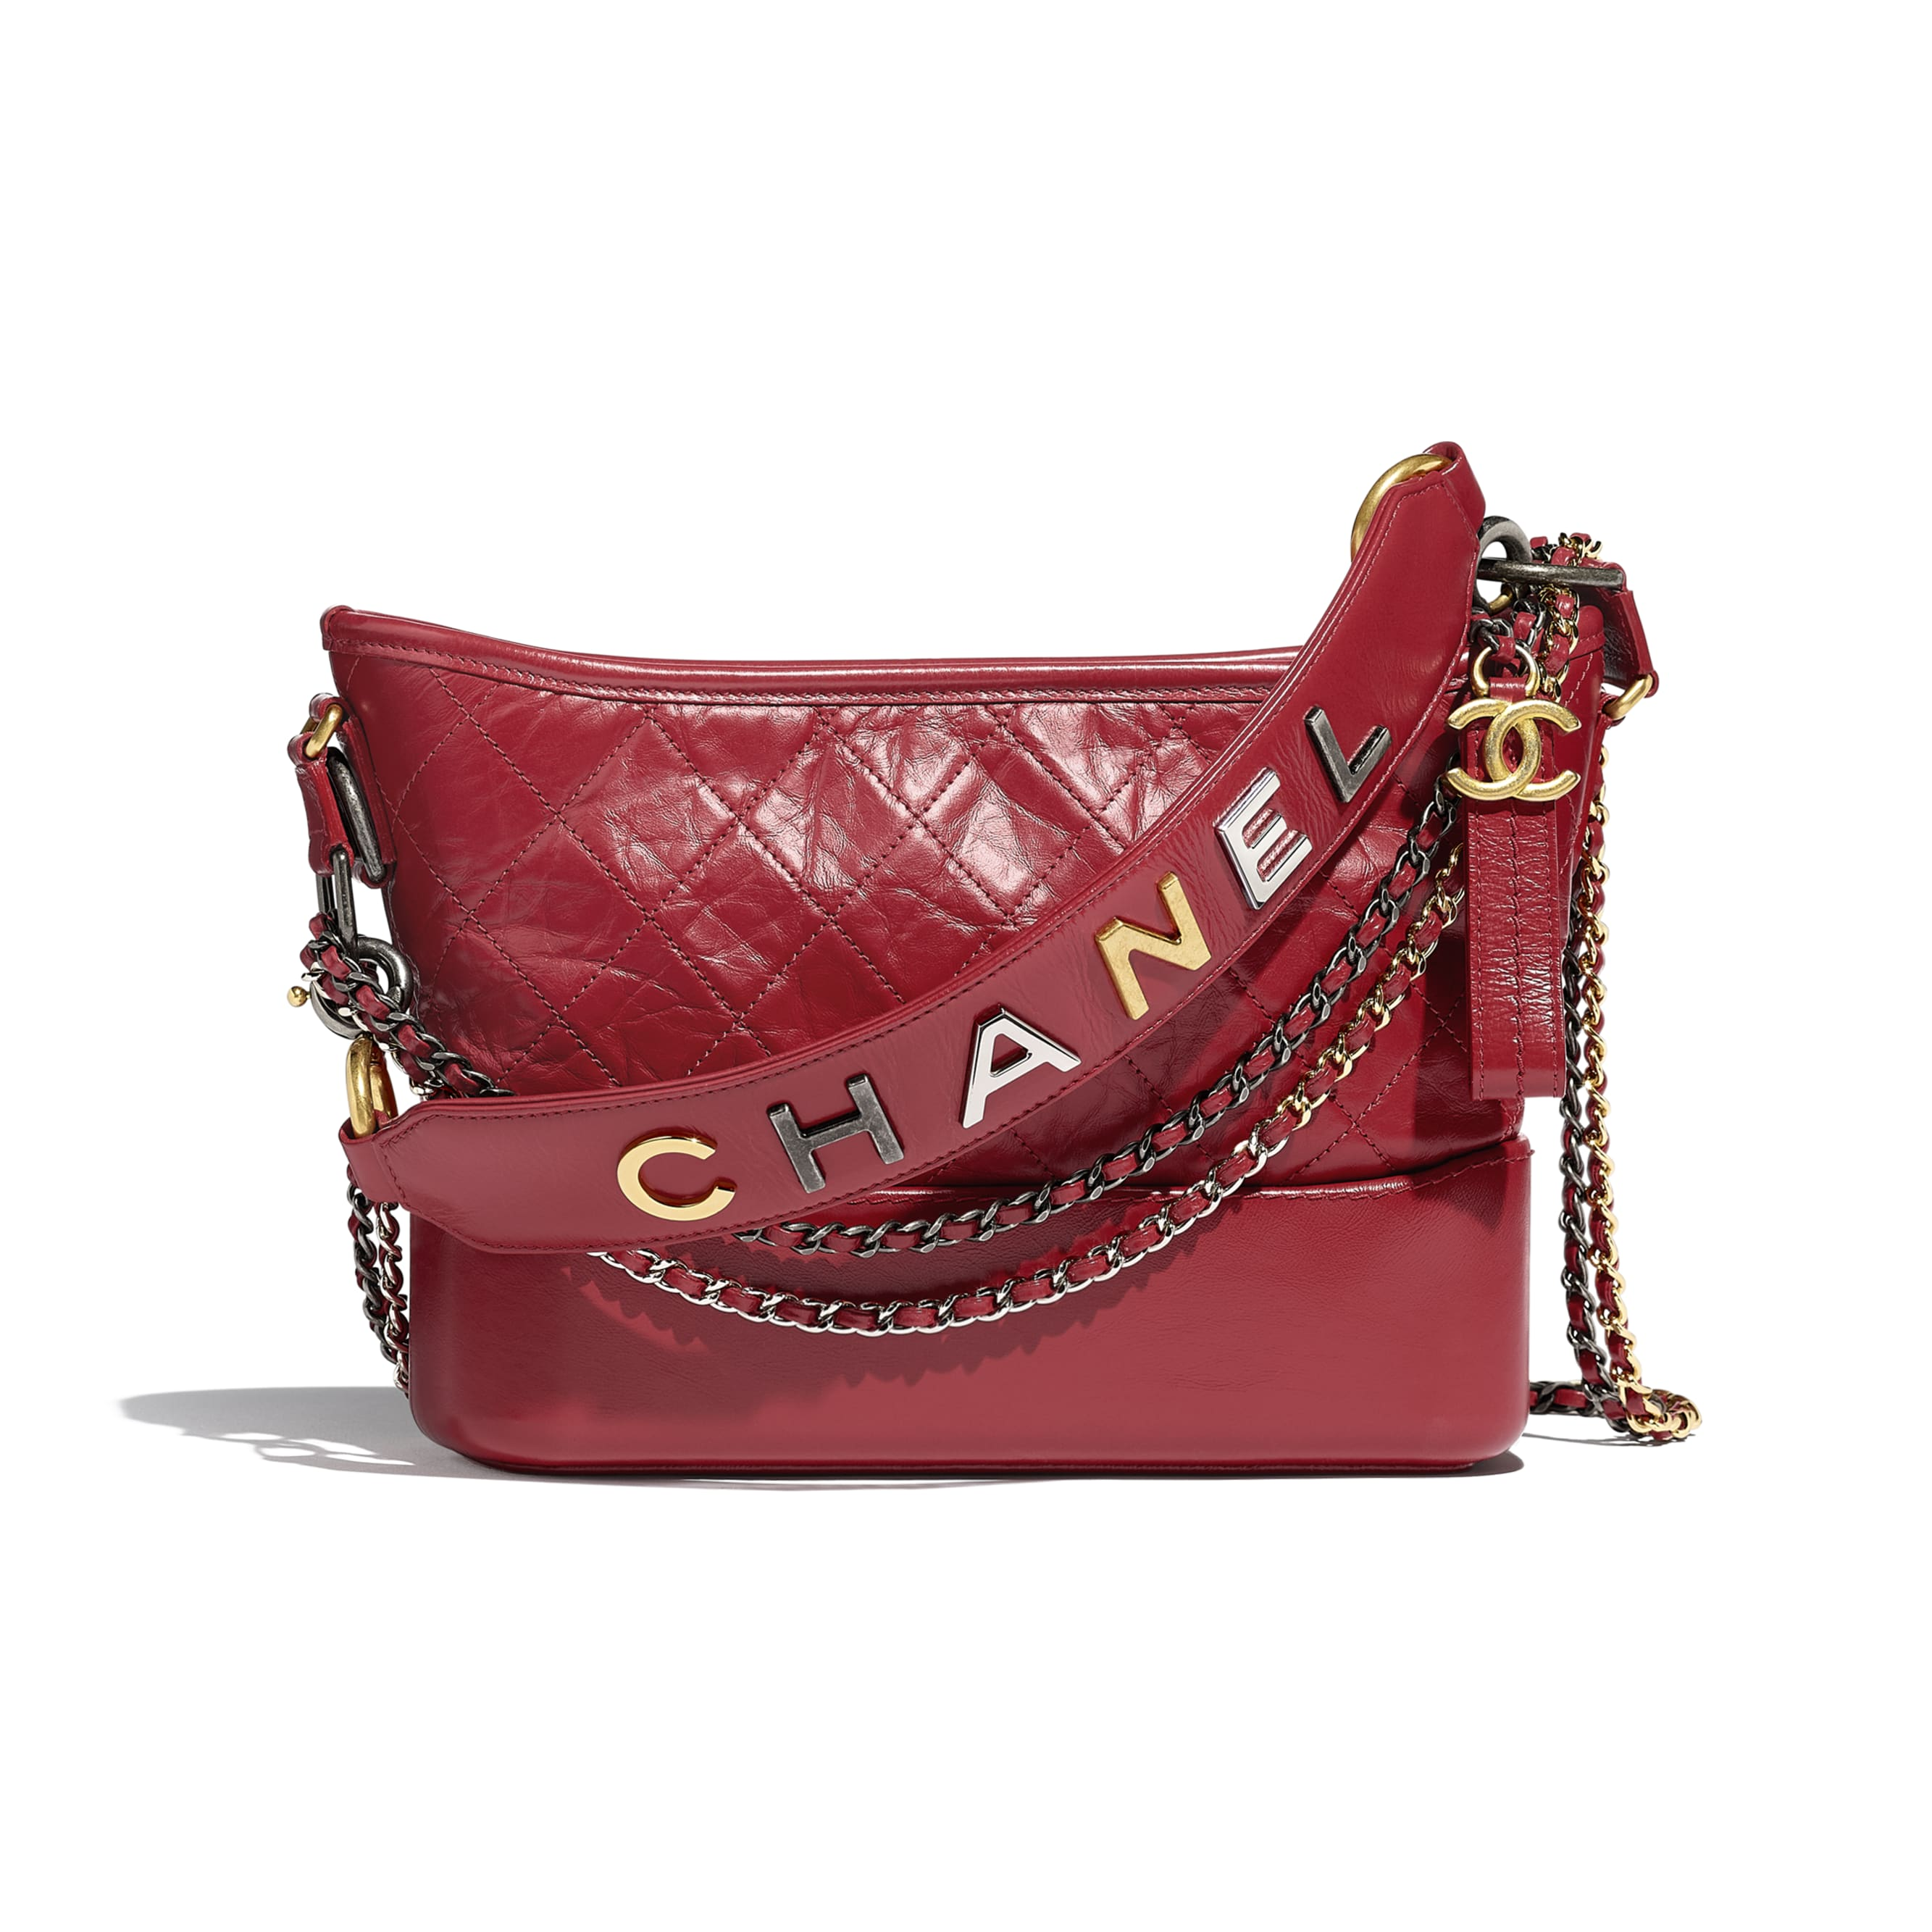 CHANEL'S GABRIELLE Hobo Handbag - Red - Aged Calfskin, Smooth Calfskin, Gold-Tone, Silver-Tone & Ruthenium-Finish Metal - CHANEL - Default view - see standard sized version